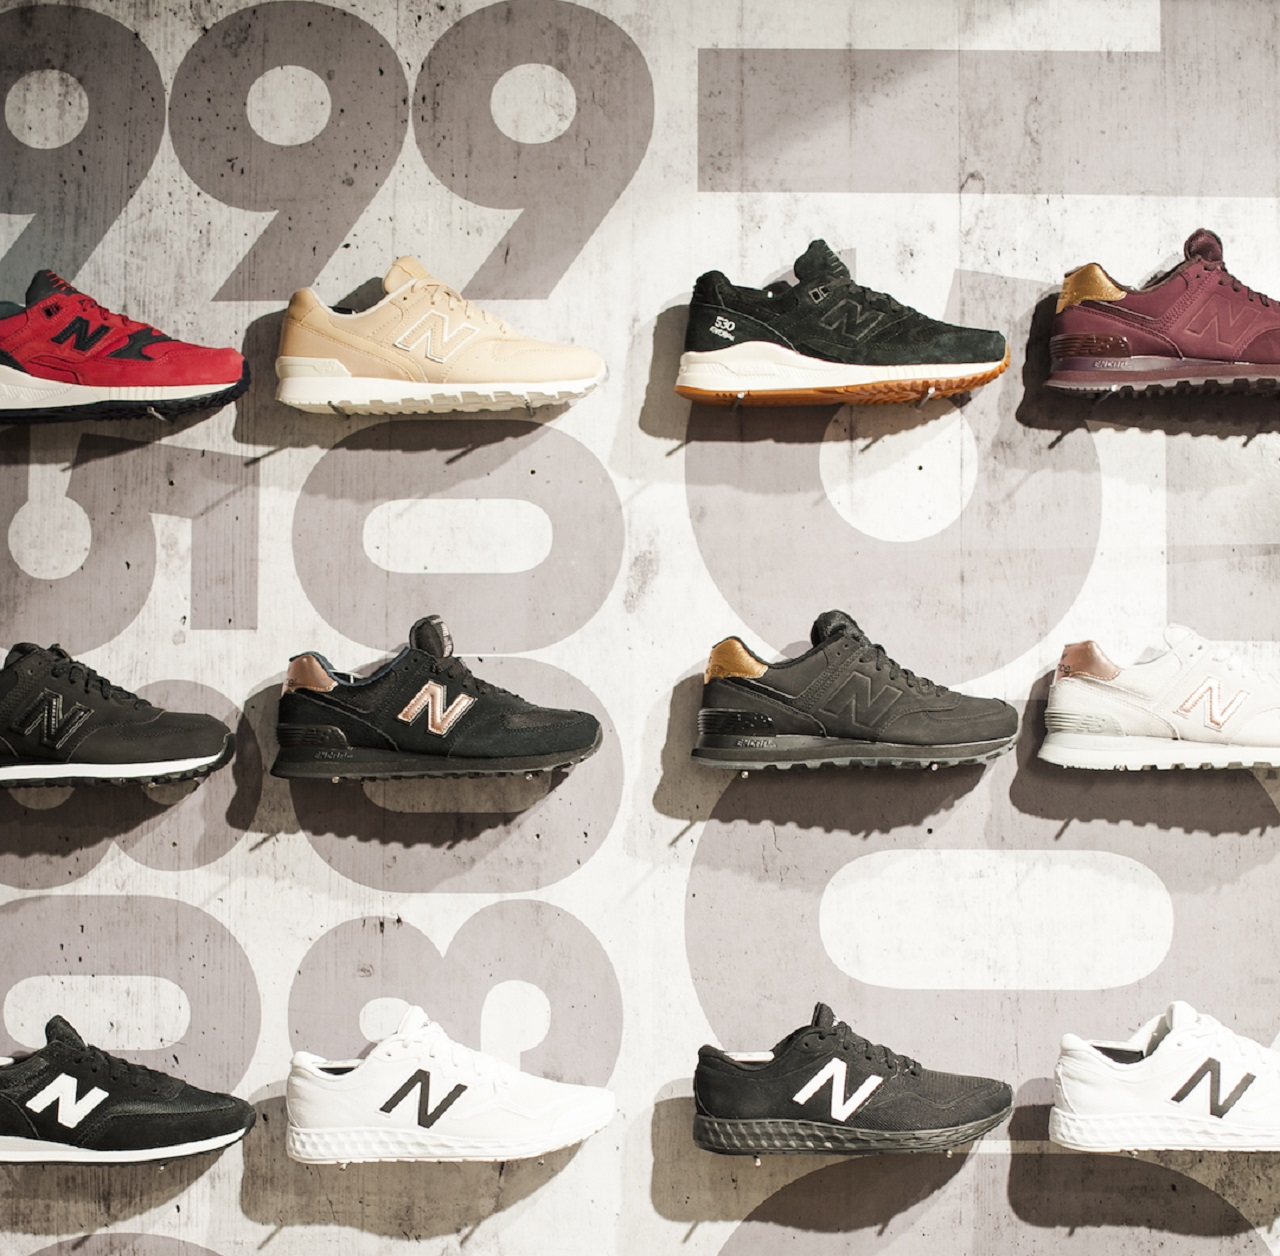 New Balance has opened a slick new store at Melbourne Central